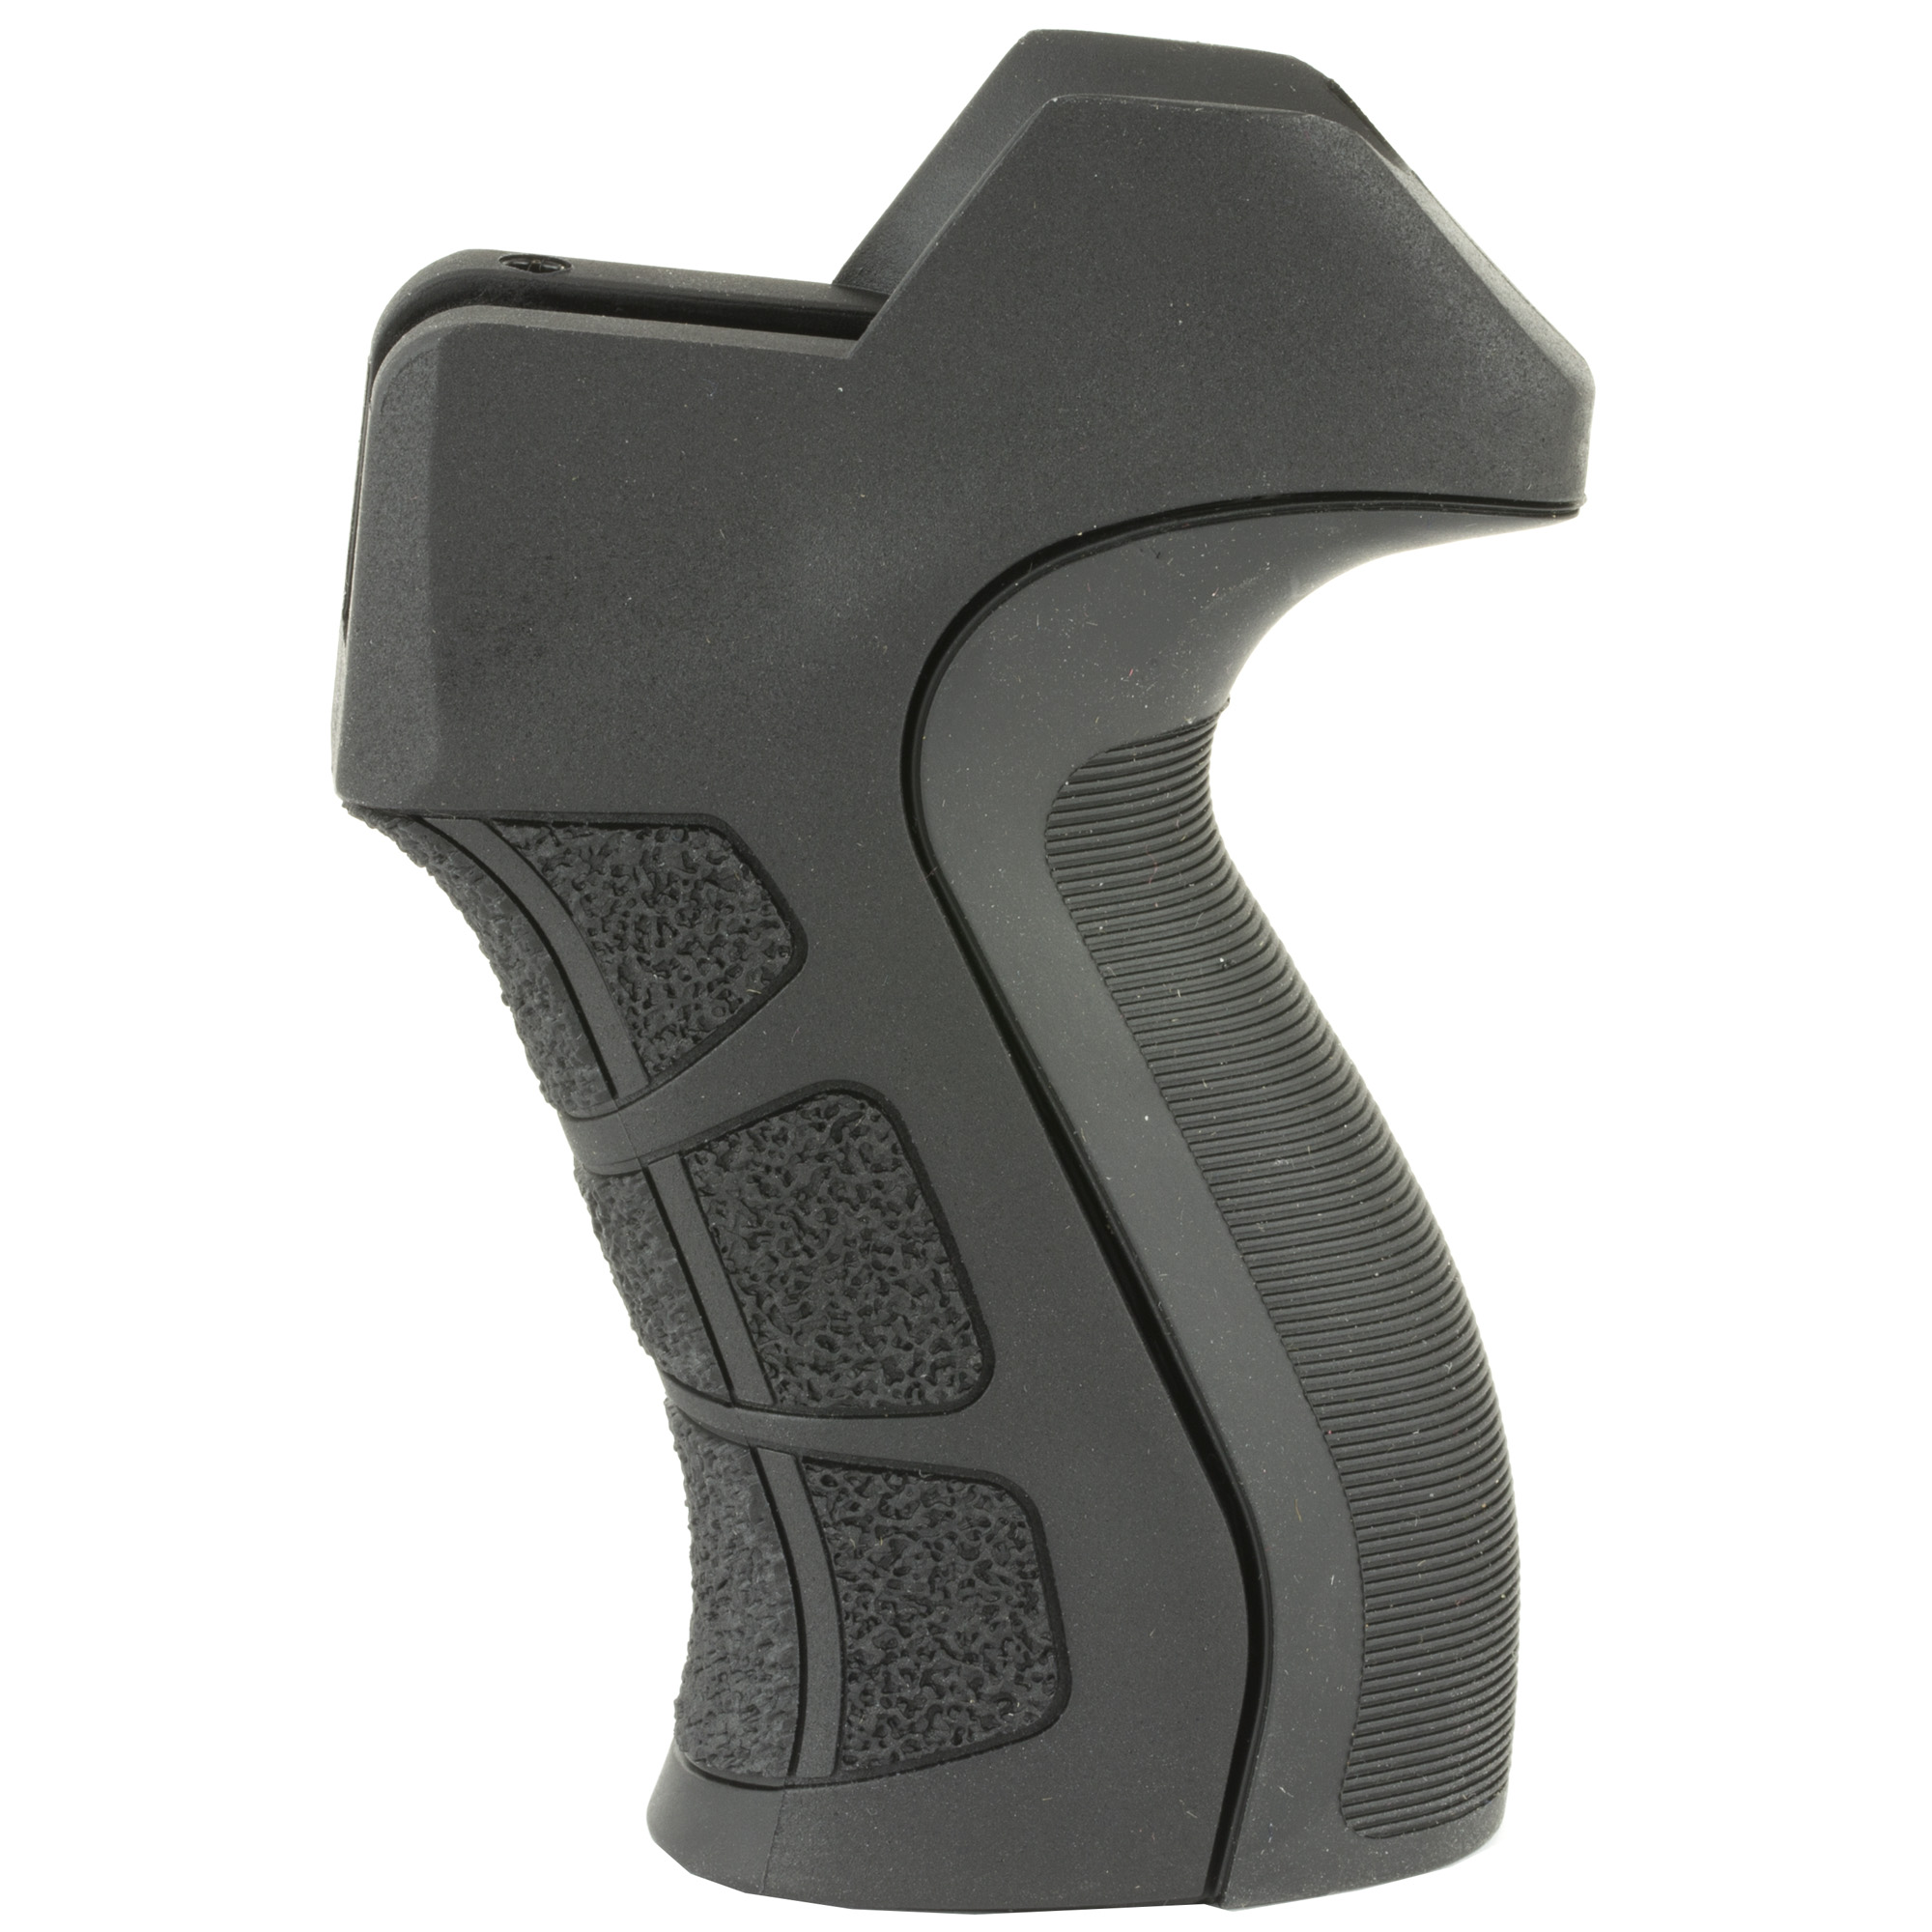 The Advanced Technology Int. X2 AR-15/AR-10 pistol grip fits most AR-15 and AR-10's. The X2 grip also fits the Ruger 22 Charger Pistol with AR-15 style grip. This pistol grip features a material that absorbs the initial shock wave which is the felt punch of the recoil. This increases the shooter's comfort while reducing the muzzle lift. Specifically Engineered Grip Dimensions Create the Optimal Distance from the Grip to the Trigger to Fit Most Hands. It is easy to install and uses original mounting hardware. The ATI AR-15 / AR-10 X2 Pistol Grip is designed to fit with a mil-spec locking ring. It will not fit with locking rings that have additional sling loops or QD Mounts. Made in USA.